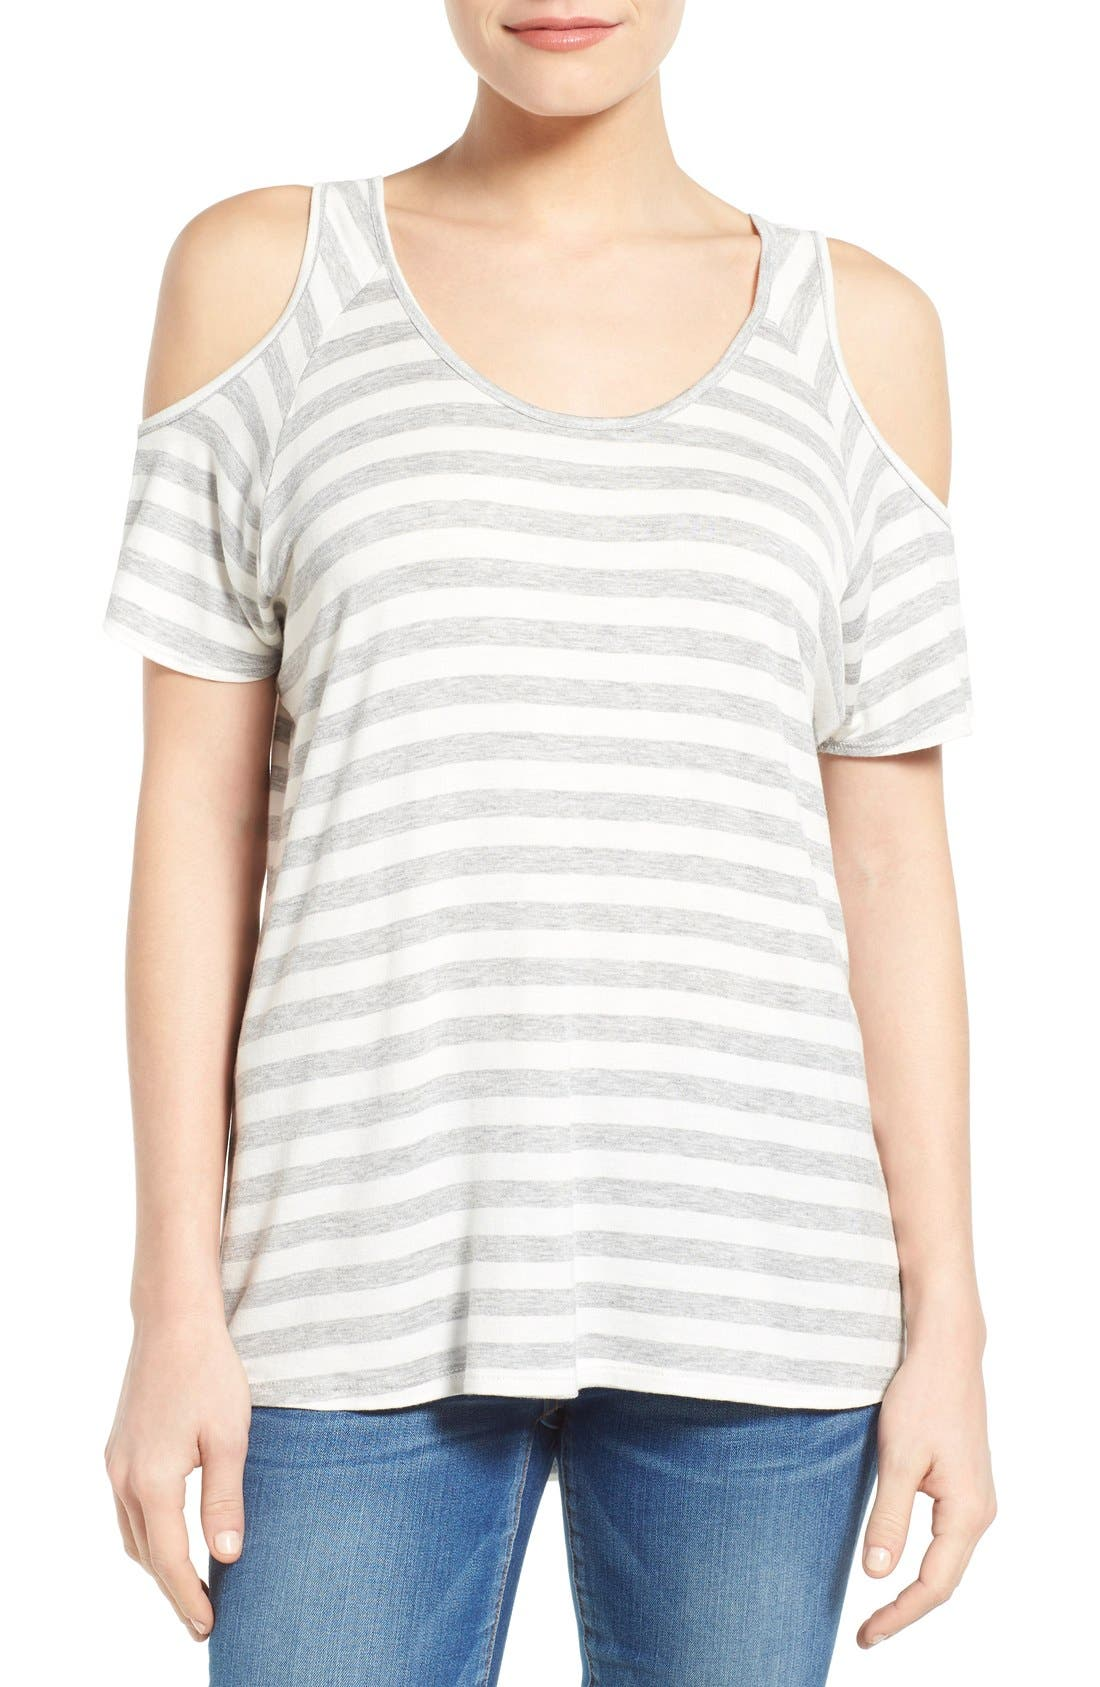 Alternate Image 1 Selected - KUT from the Kloth 'Caroline' Cold Shoulder Stripe Top